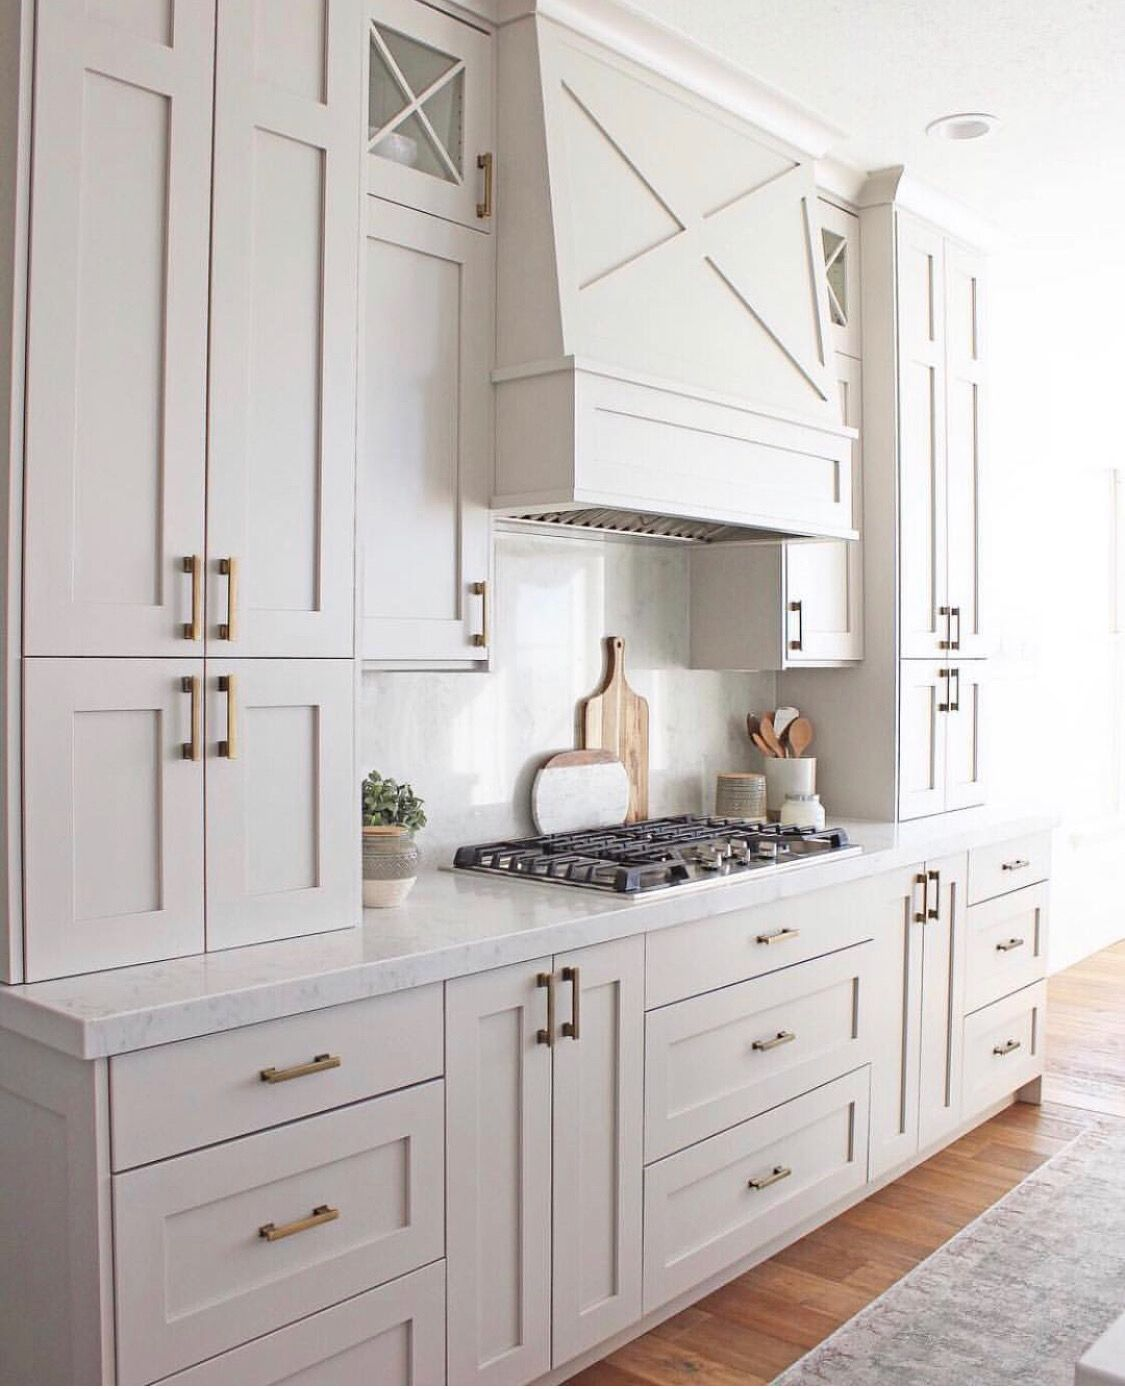 cabinet color not stark white kitchen renovation kitchen remodel kitchen design on kitchen cabinets not white id=37325